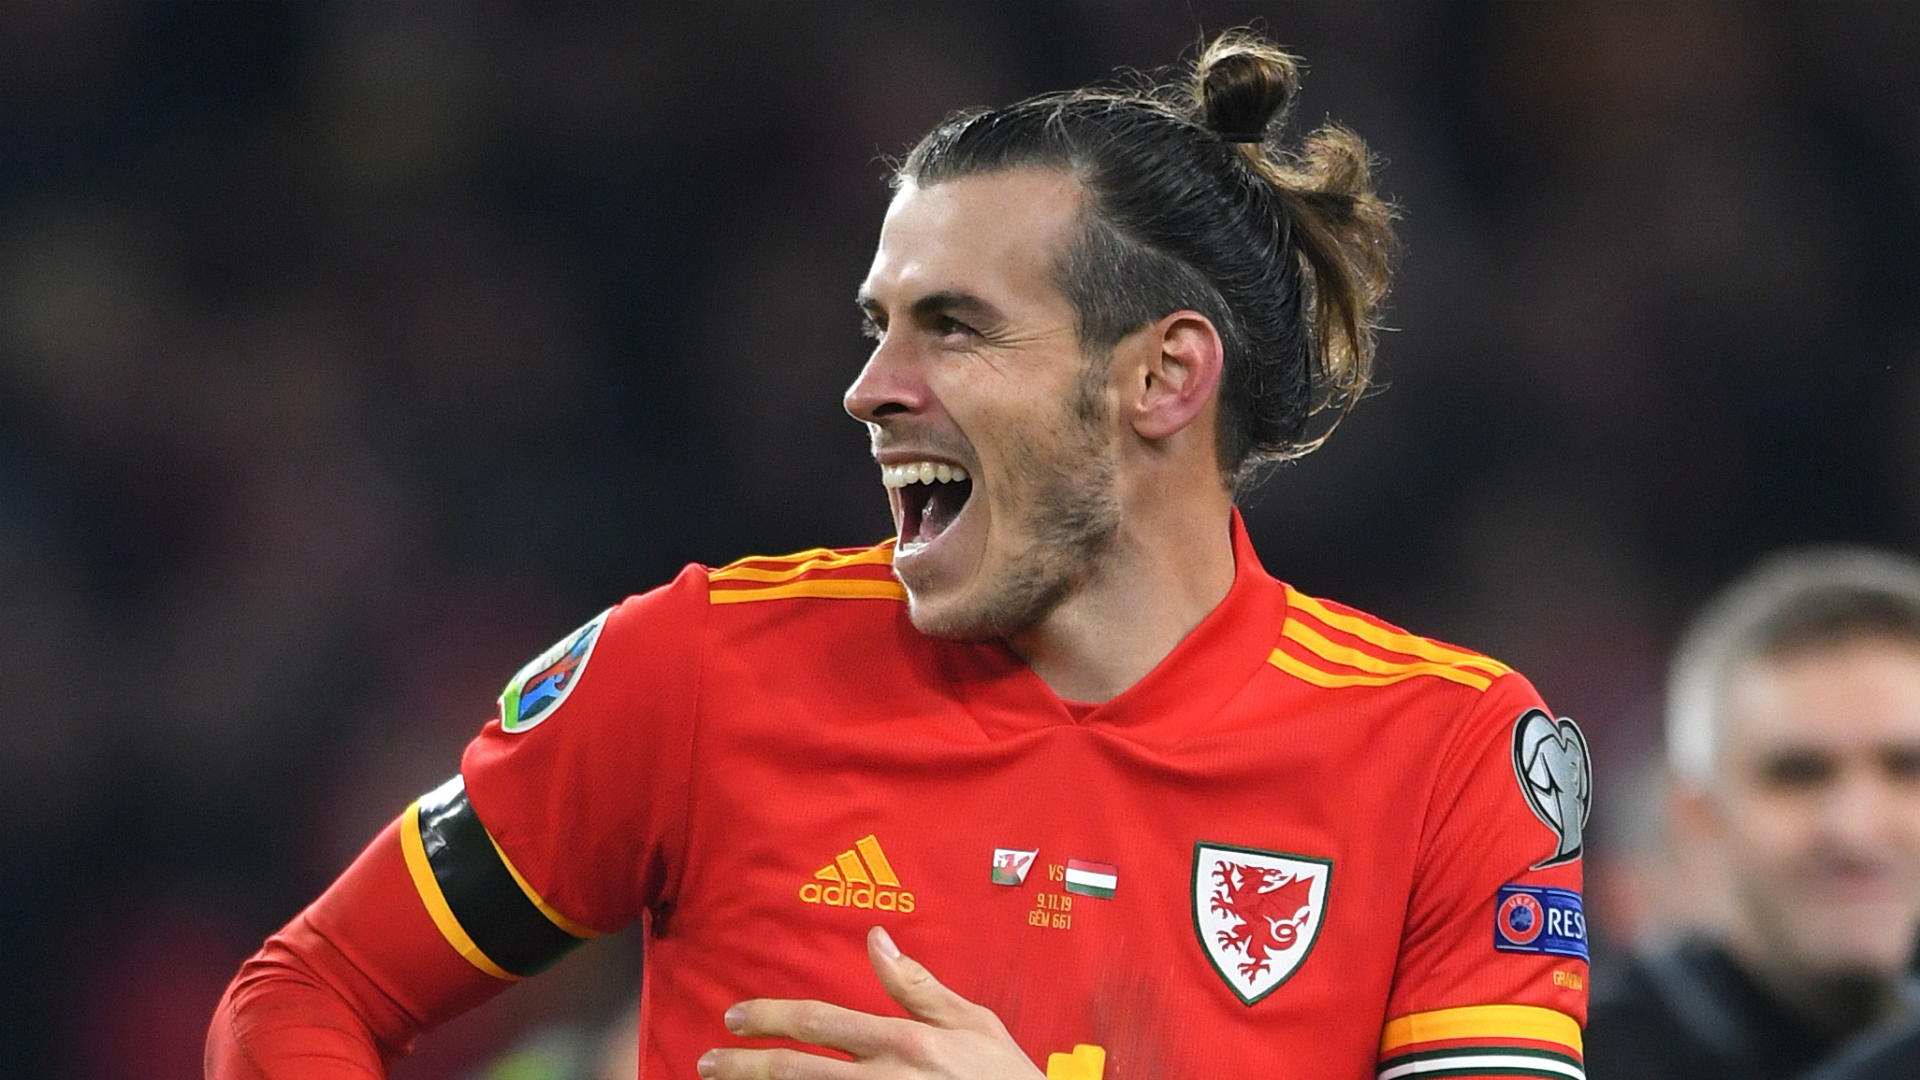 He still loves the game - Giggs says Bale not affected by criticism